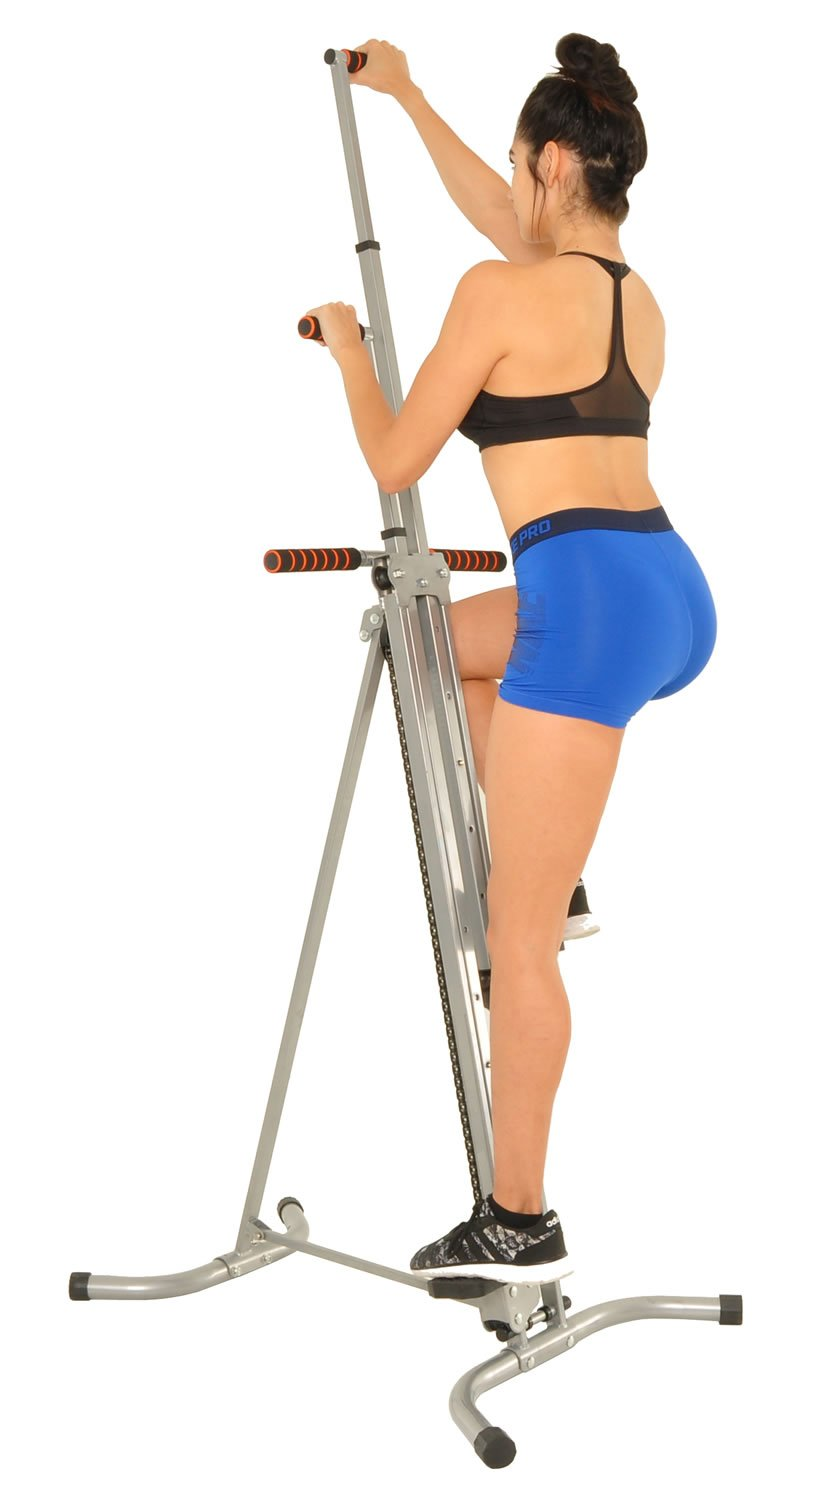 Conquer Vertical Climber Fitness Climbing Machine by Conquer (Image #5)